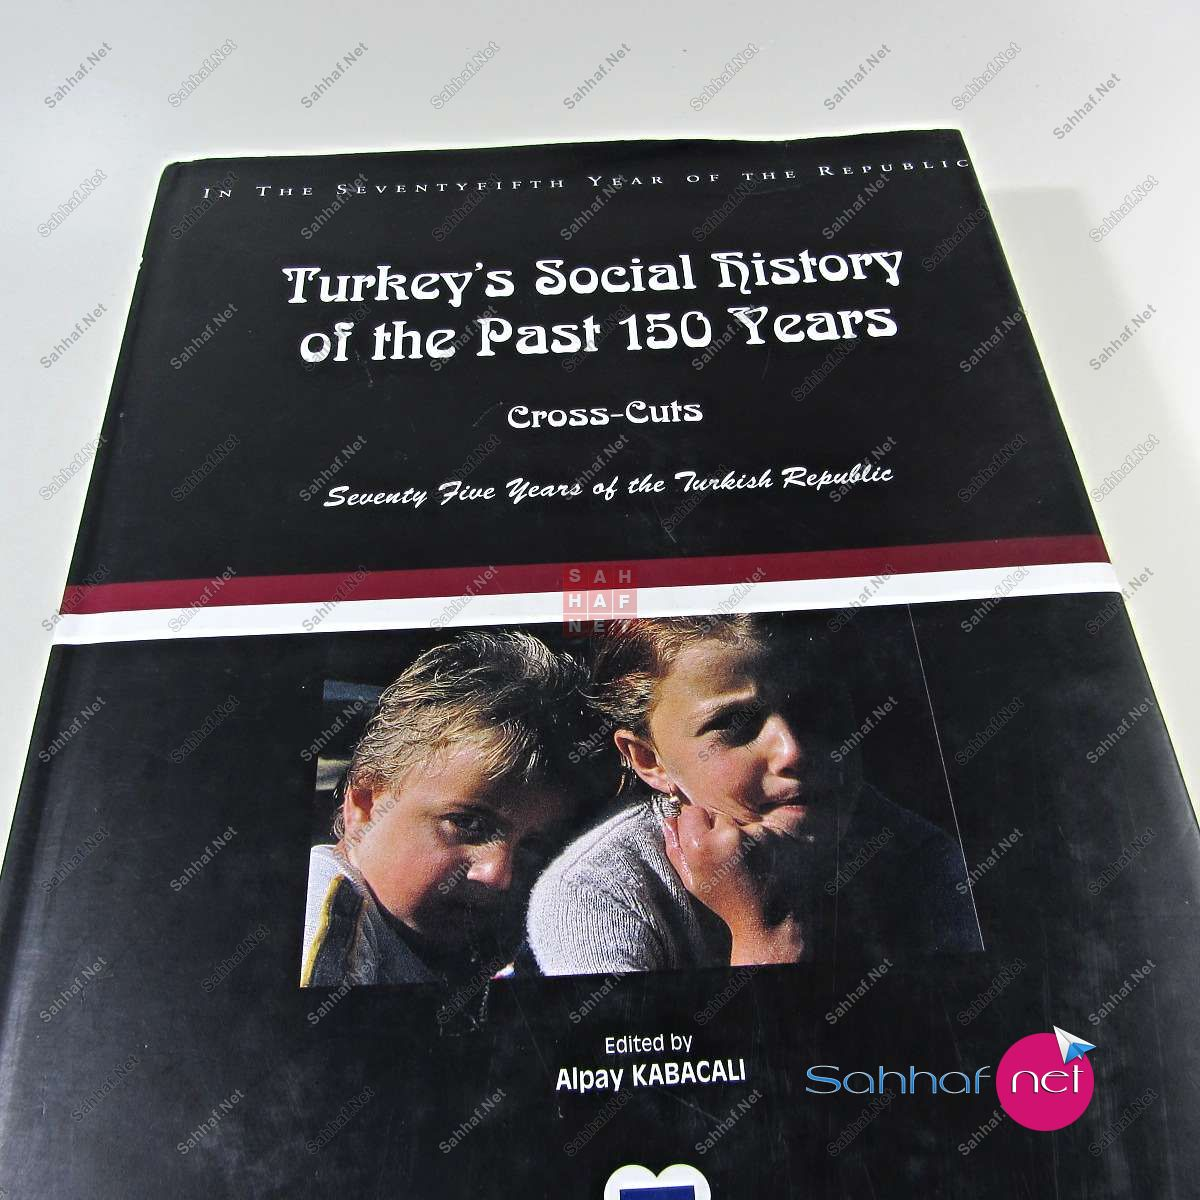 TURKEY'S SOCIAL HISTORY OF THE PAST 150 YEARS Kitap